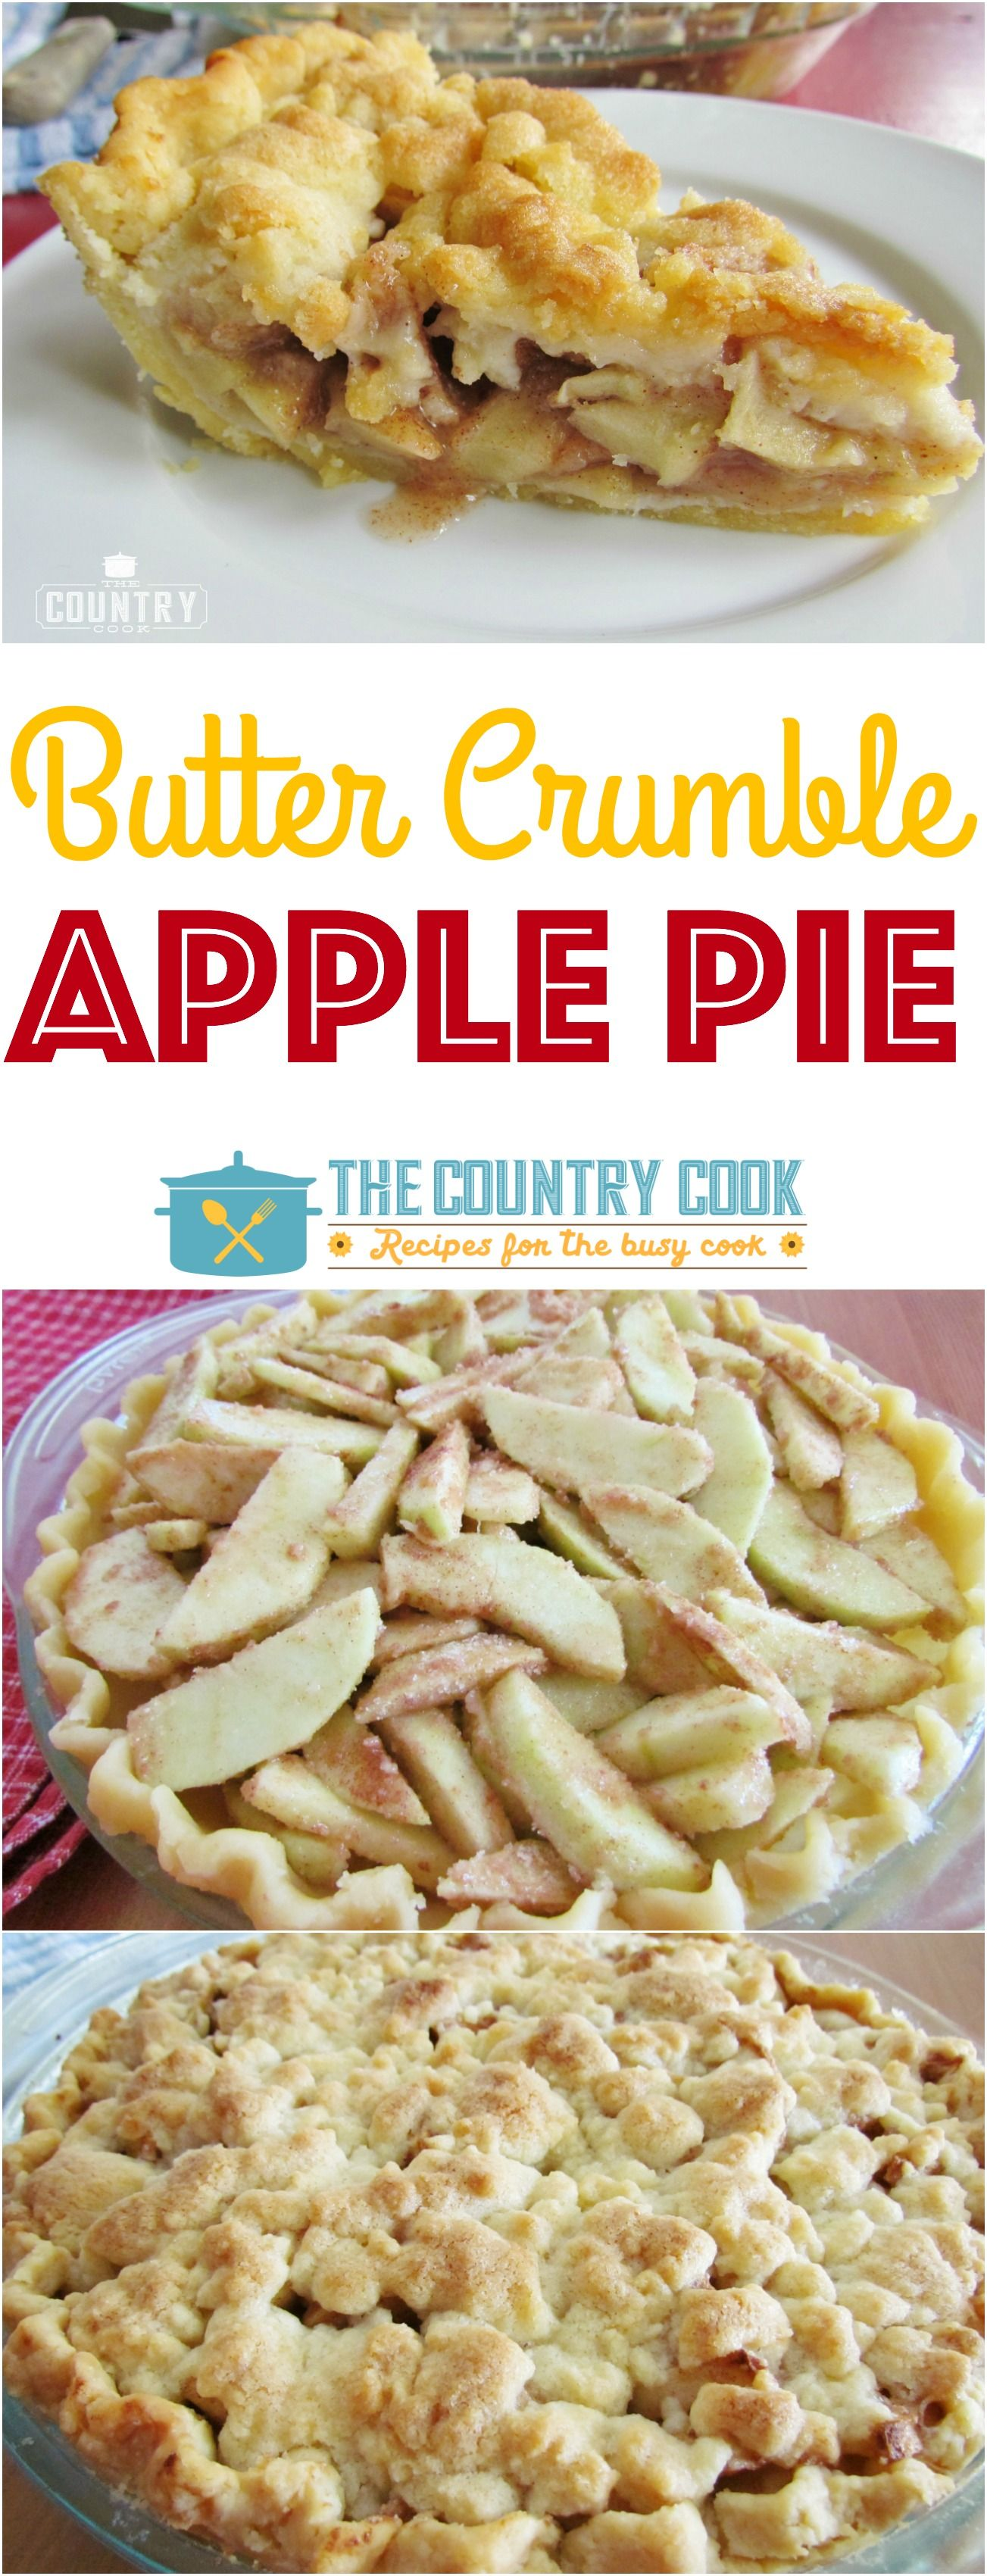 Butter Crumble Apple Pie | Recipe | The Country Cook ...